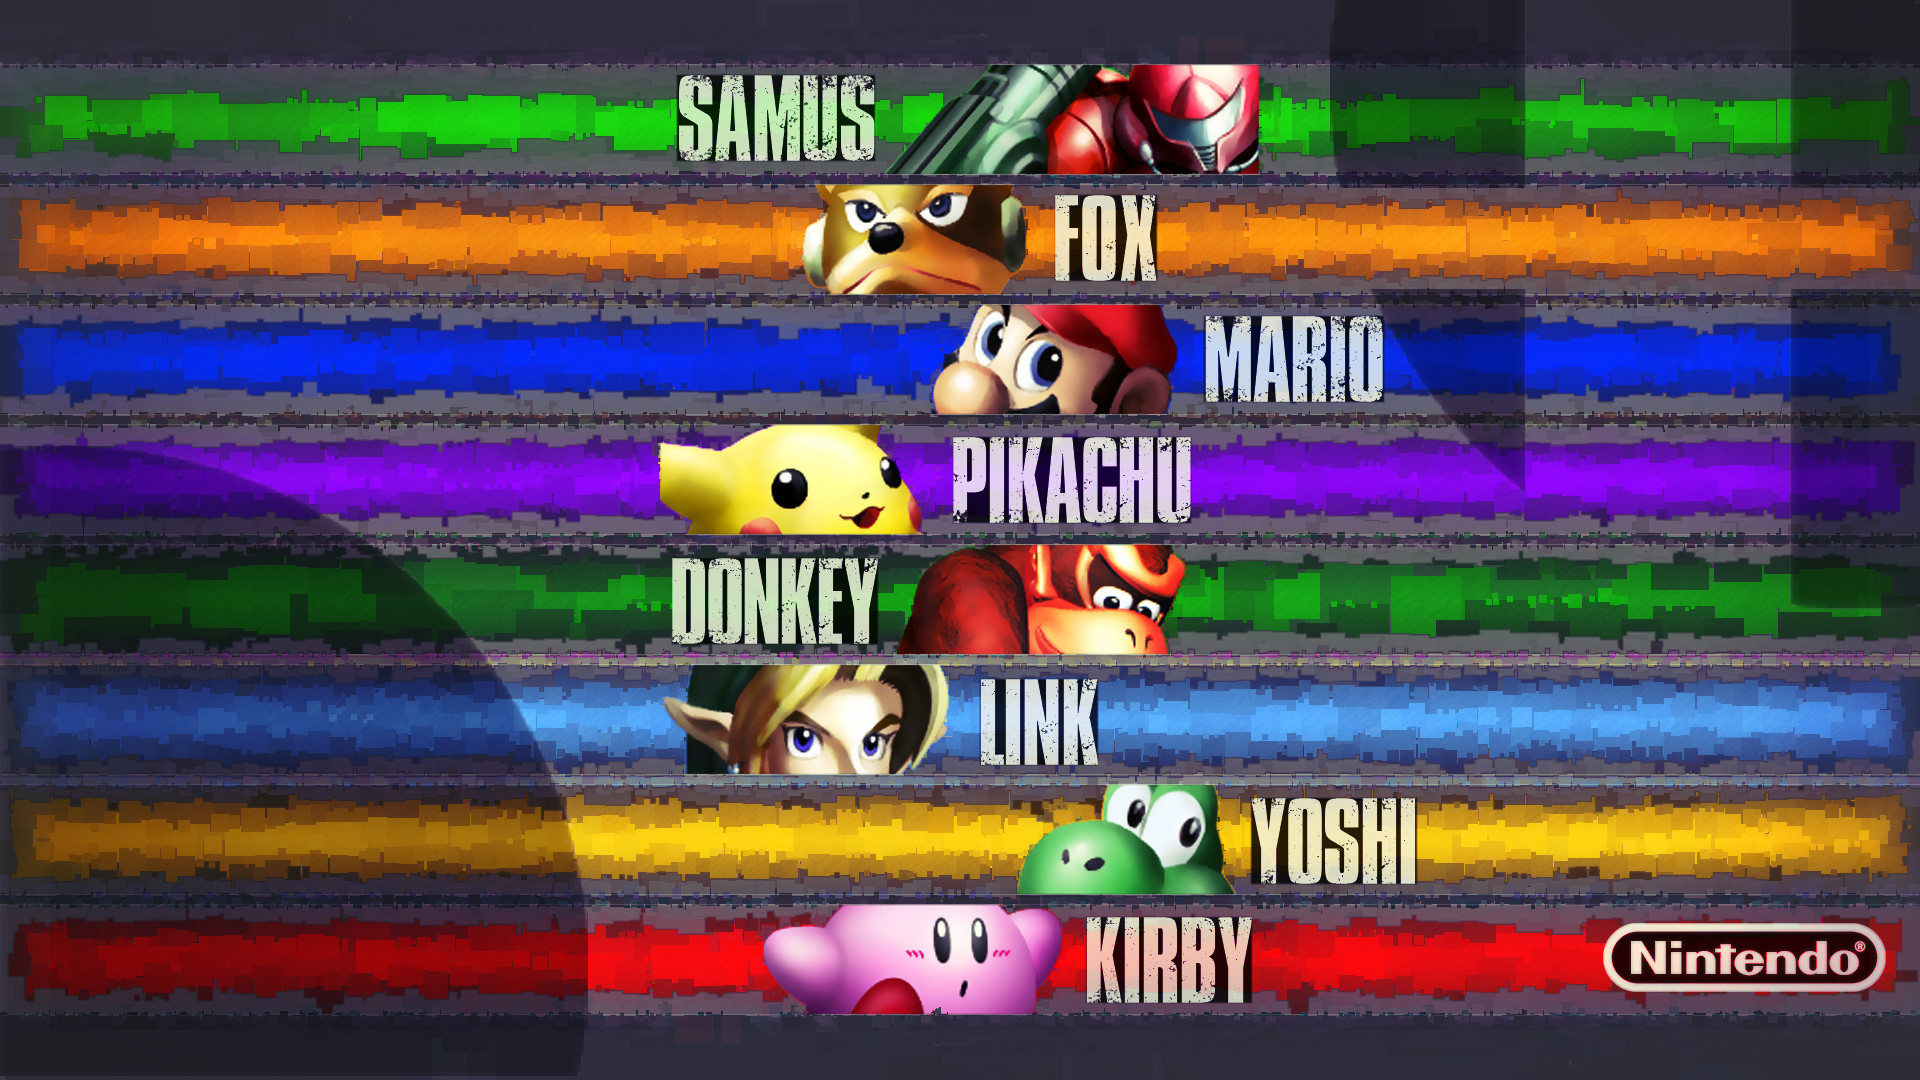 … Super Smash Brothers (N64)[1] by Light-Rock